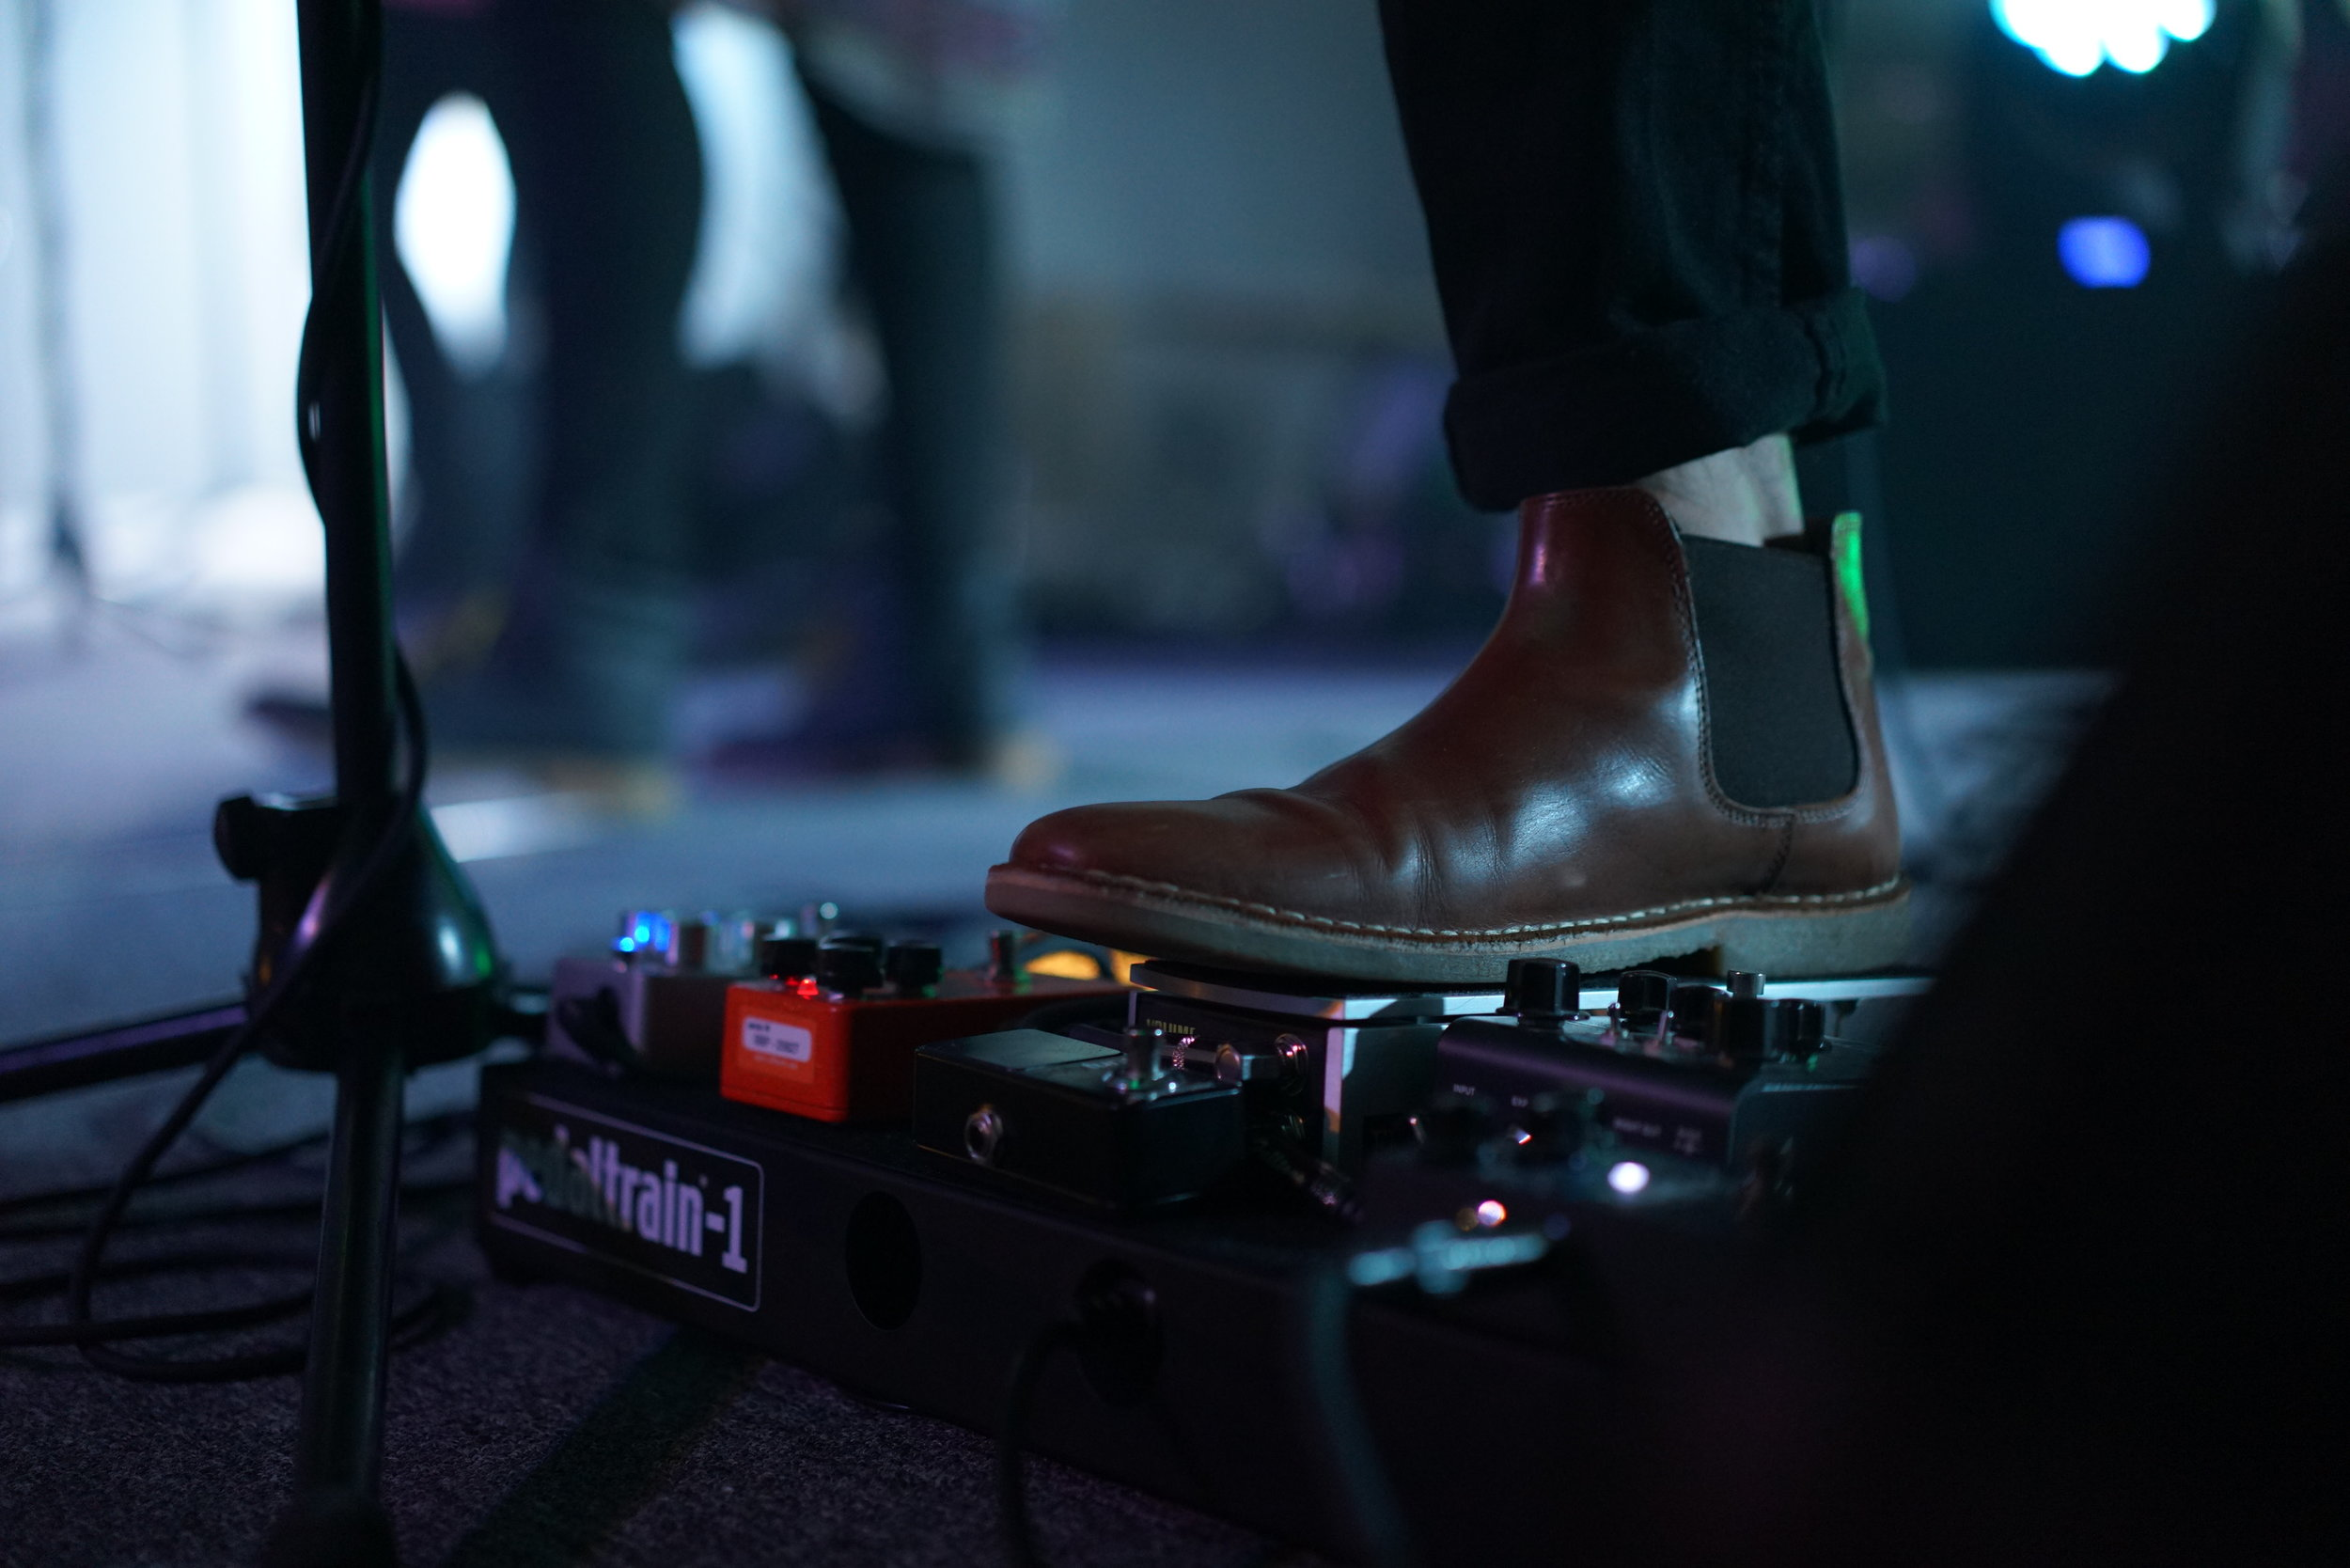 boss-fight-free-high-quality-stock-images-photos-photography-shoe-music-equipment.jpg